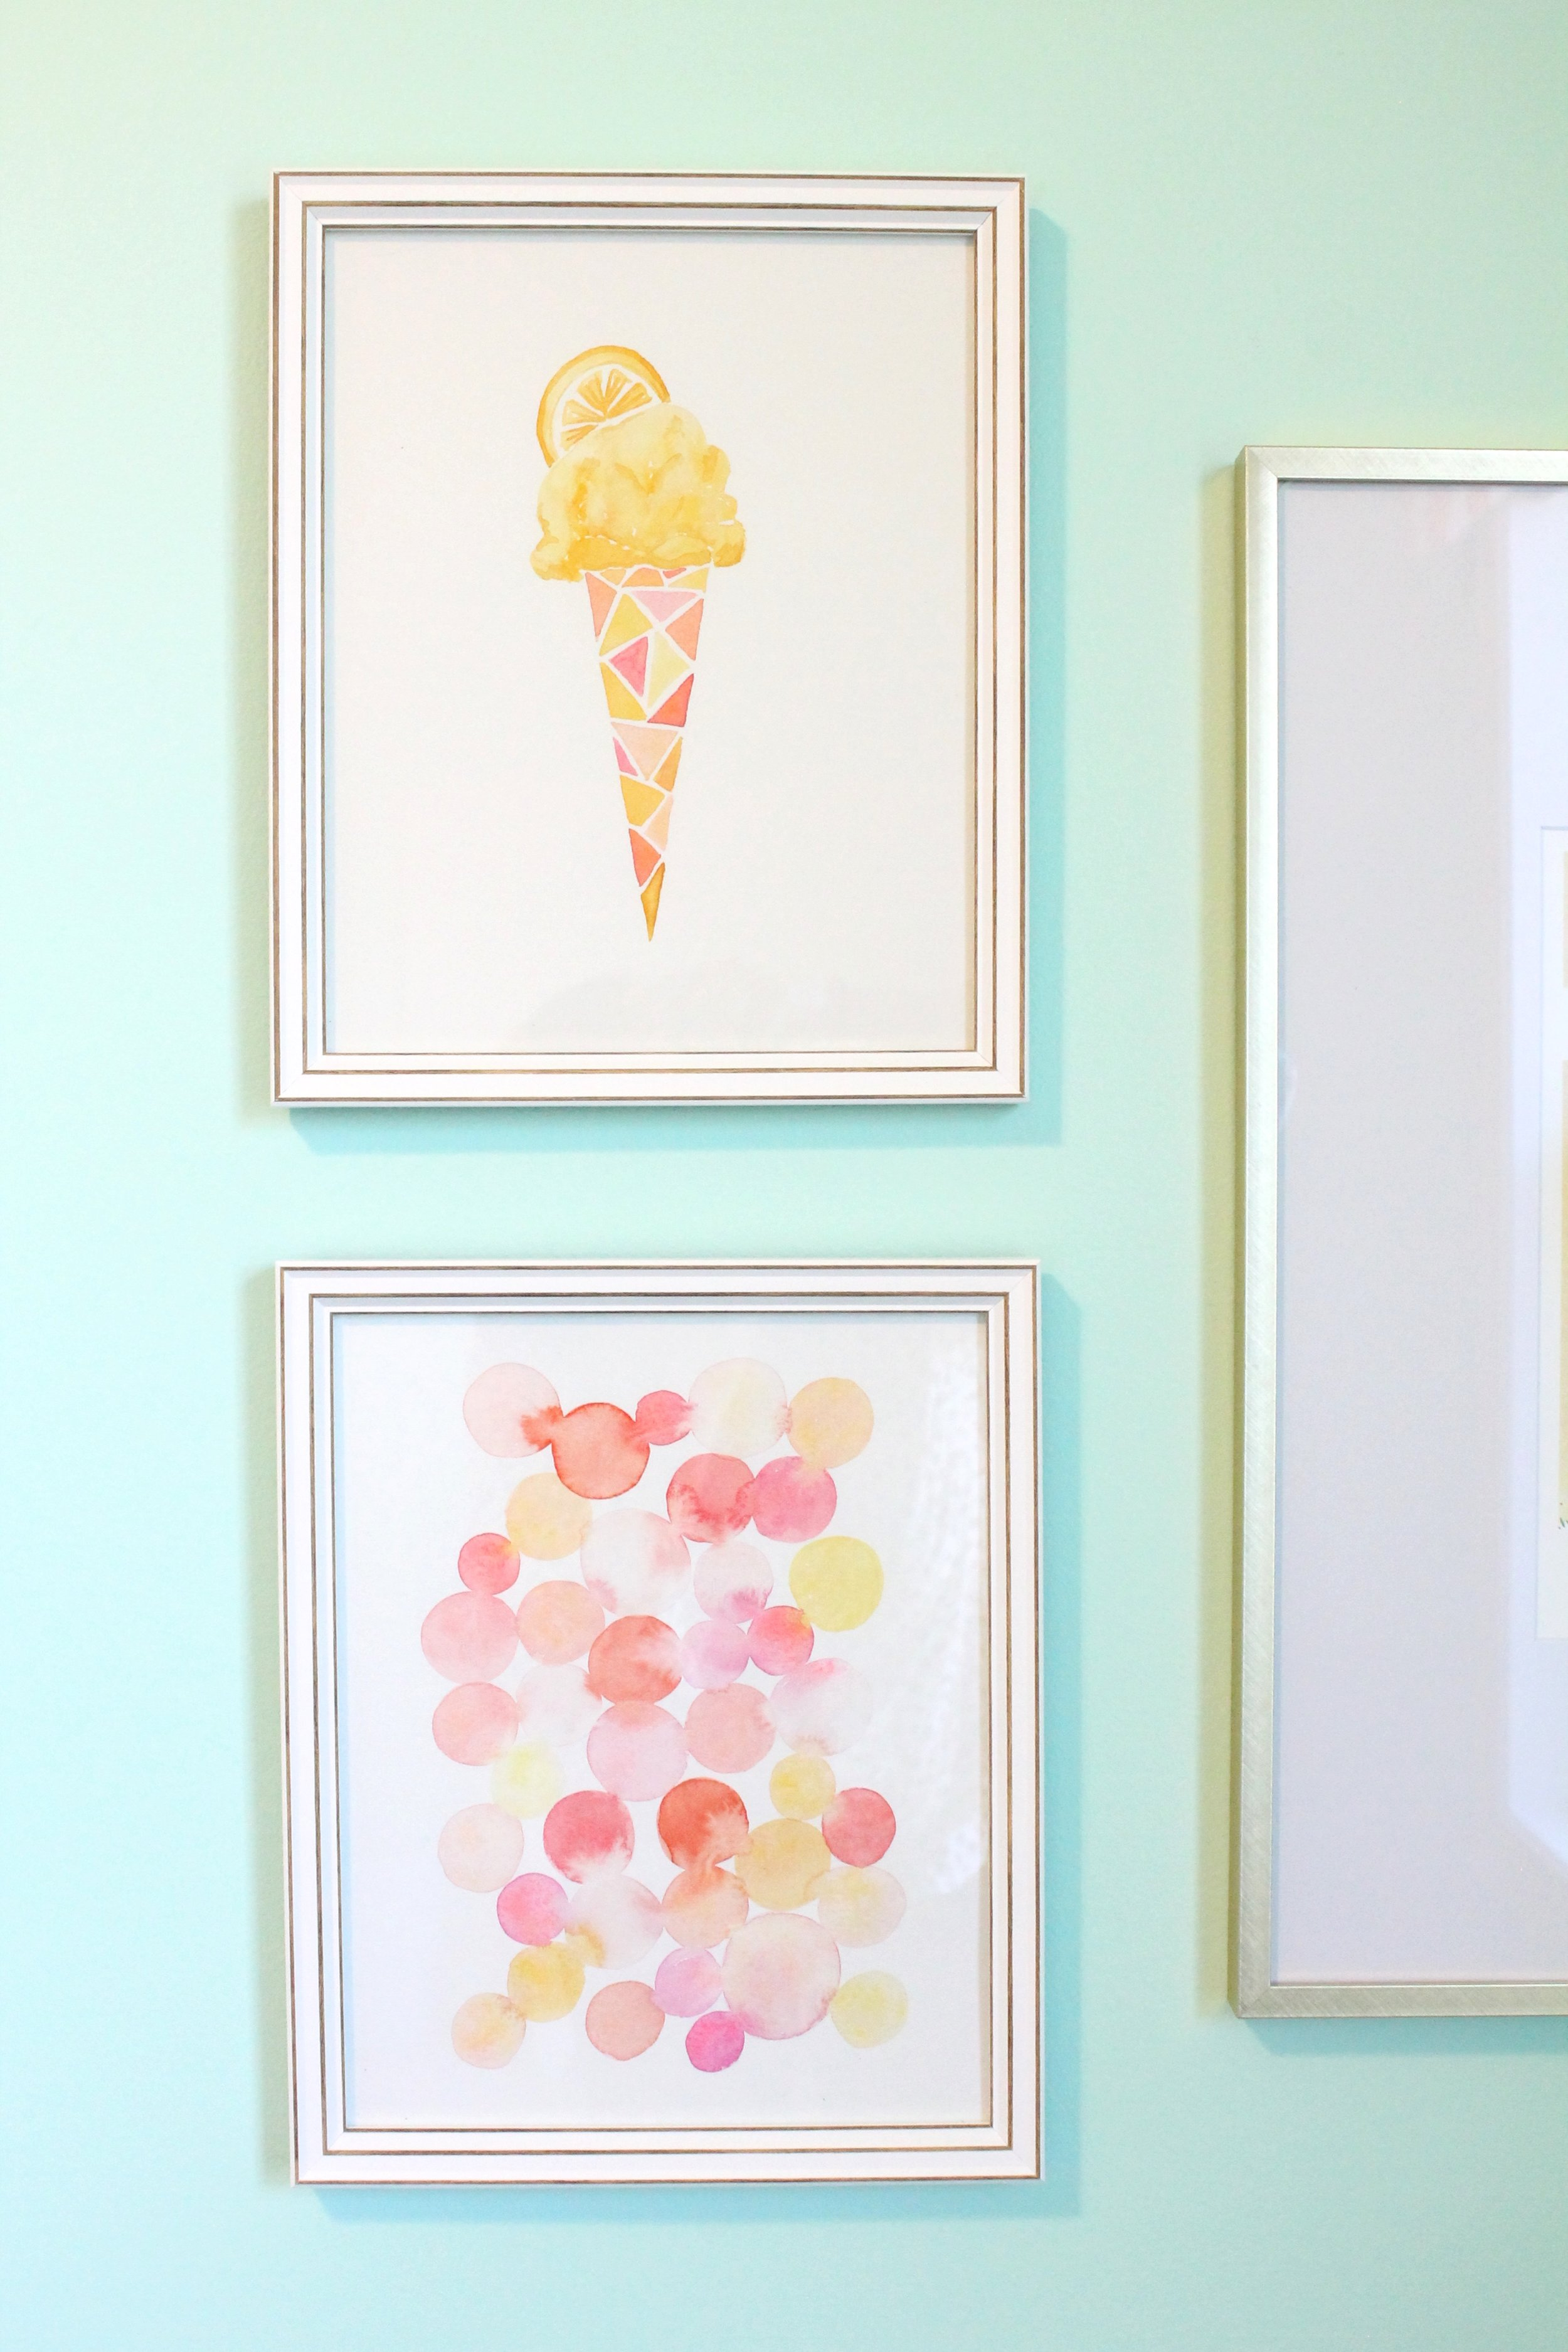 Water color lemon ice cream painting by Tessie Fay